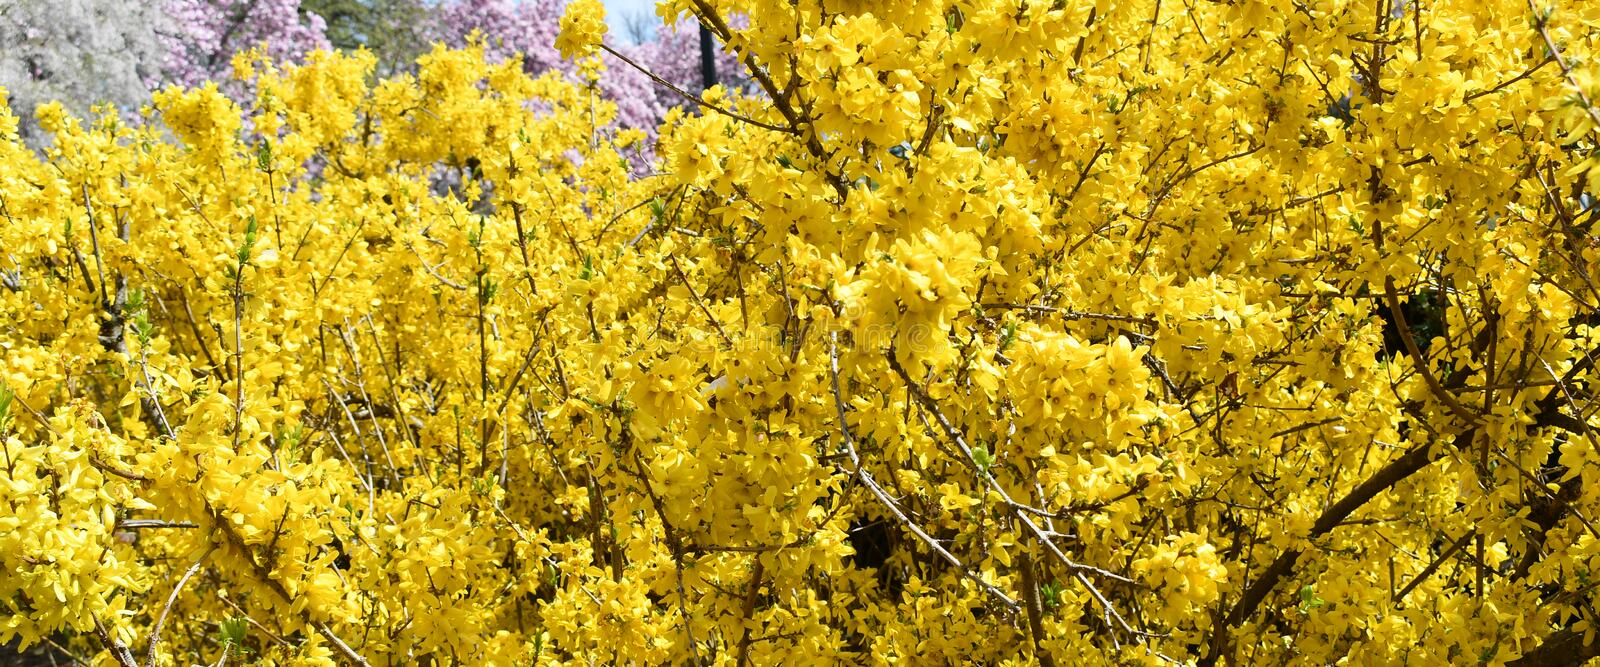 Yellow Forsythia Bush In Bloom Stock Photo Image Of Delicate